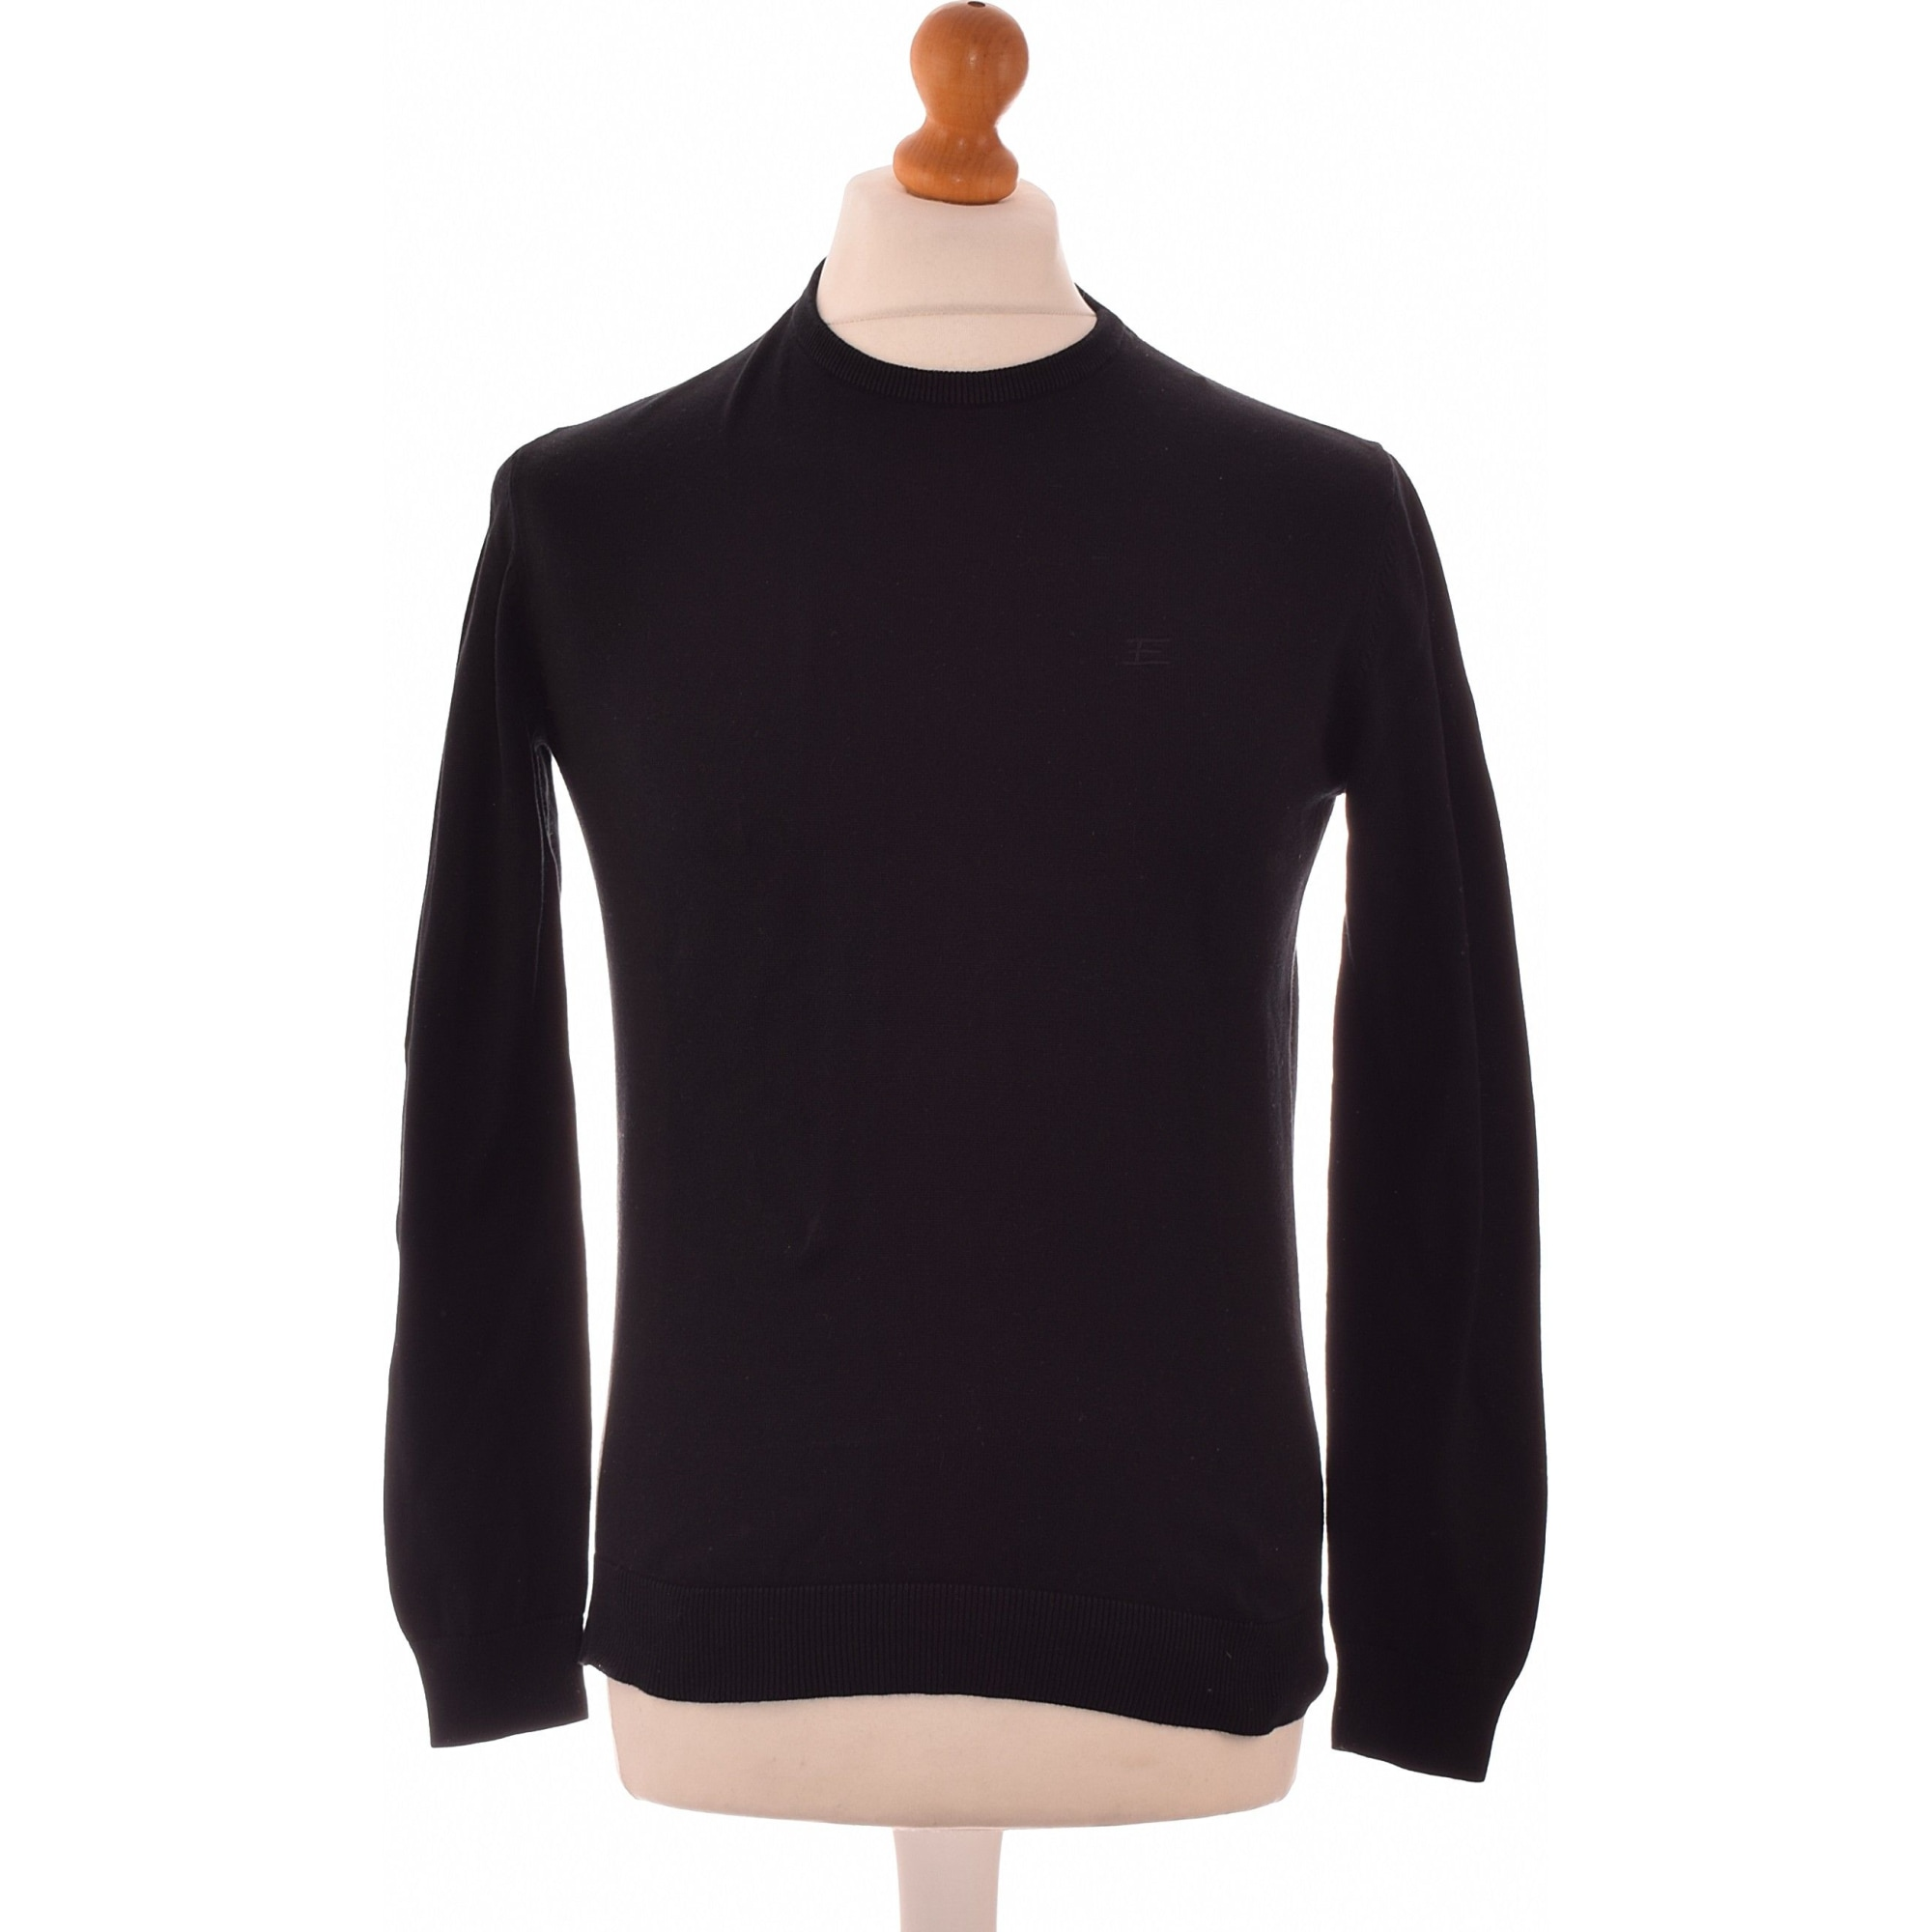 Sweater ESPRIT Black